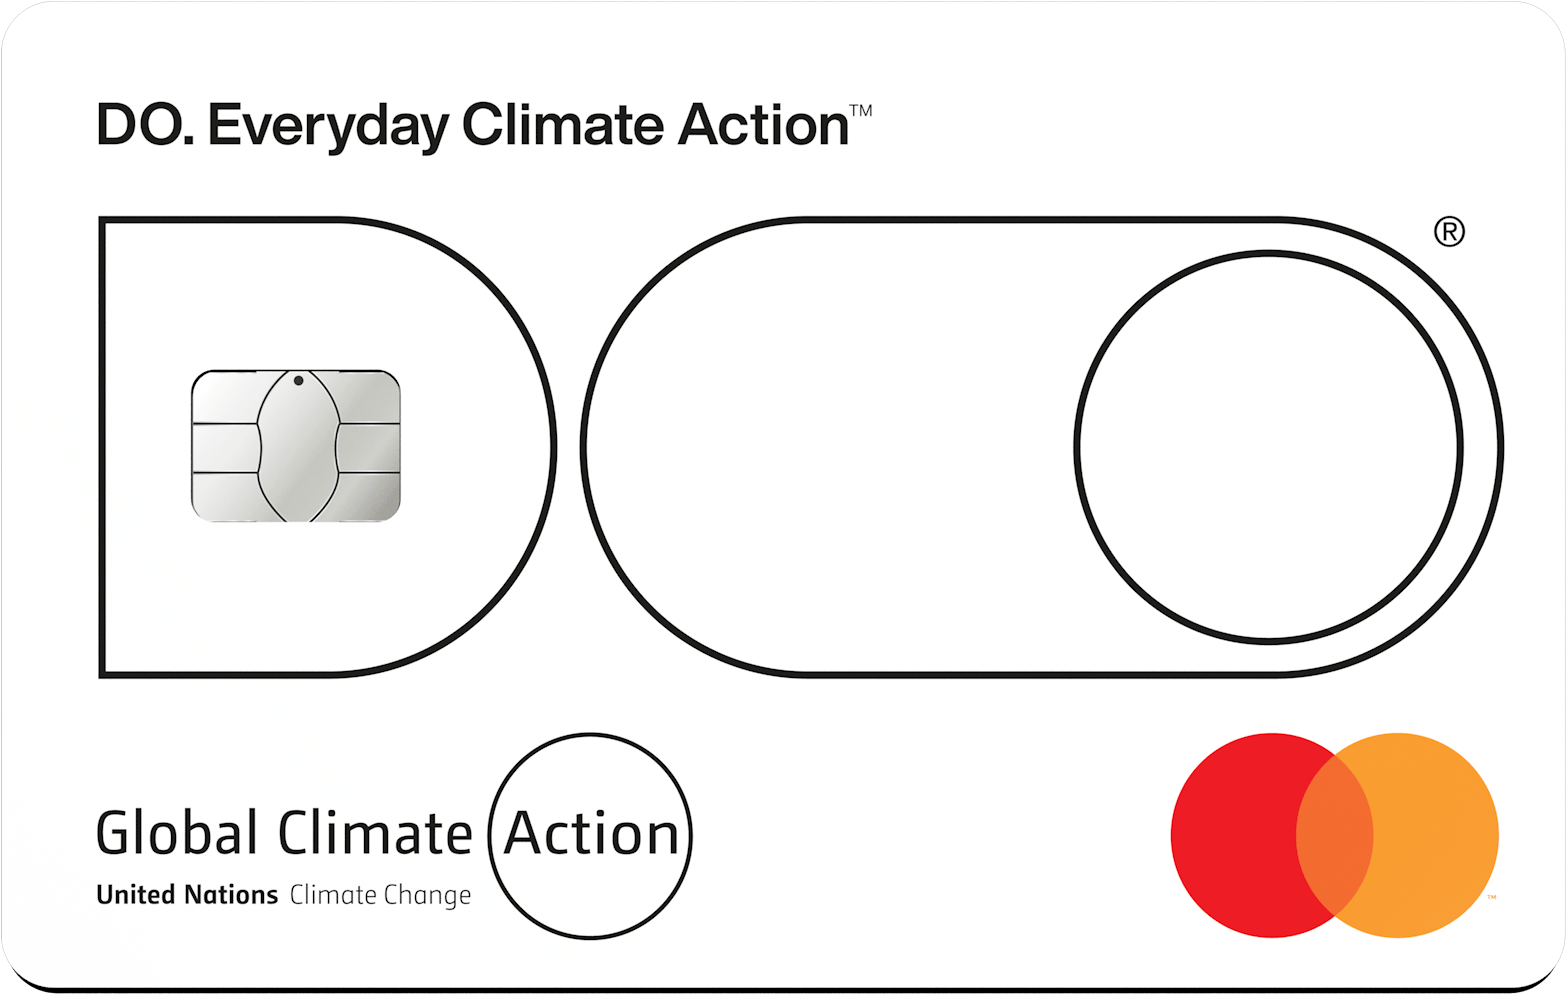 DO. Everyday Climate Action – Doconomy